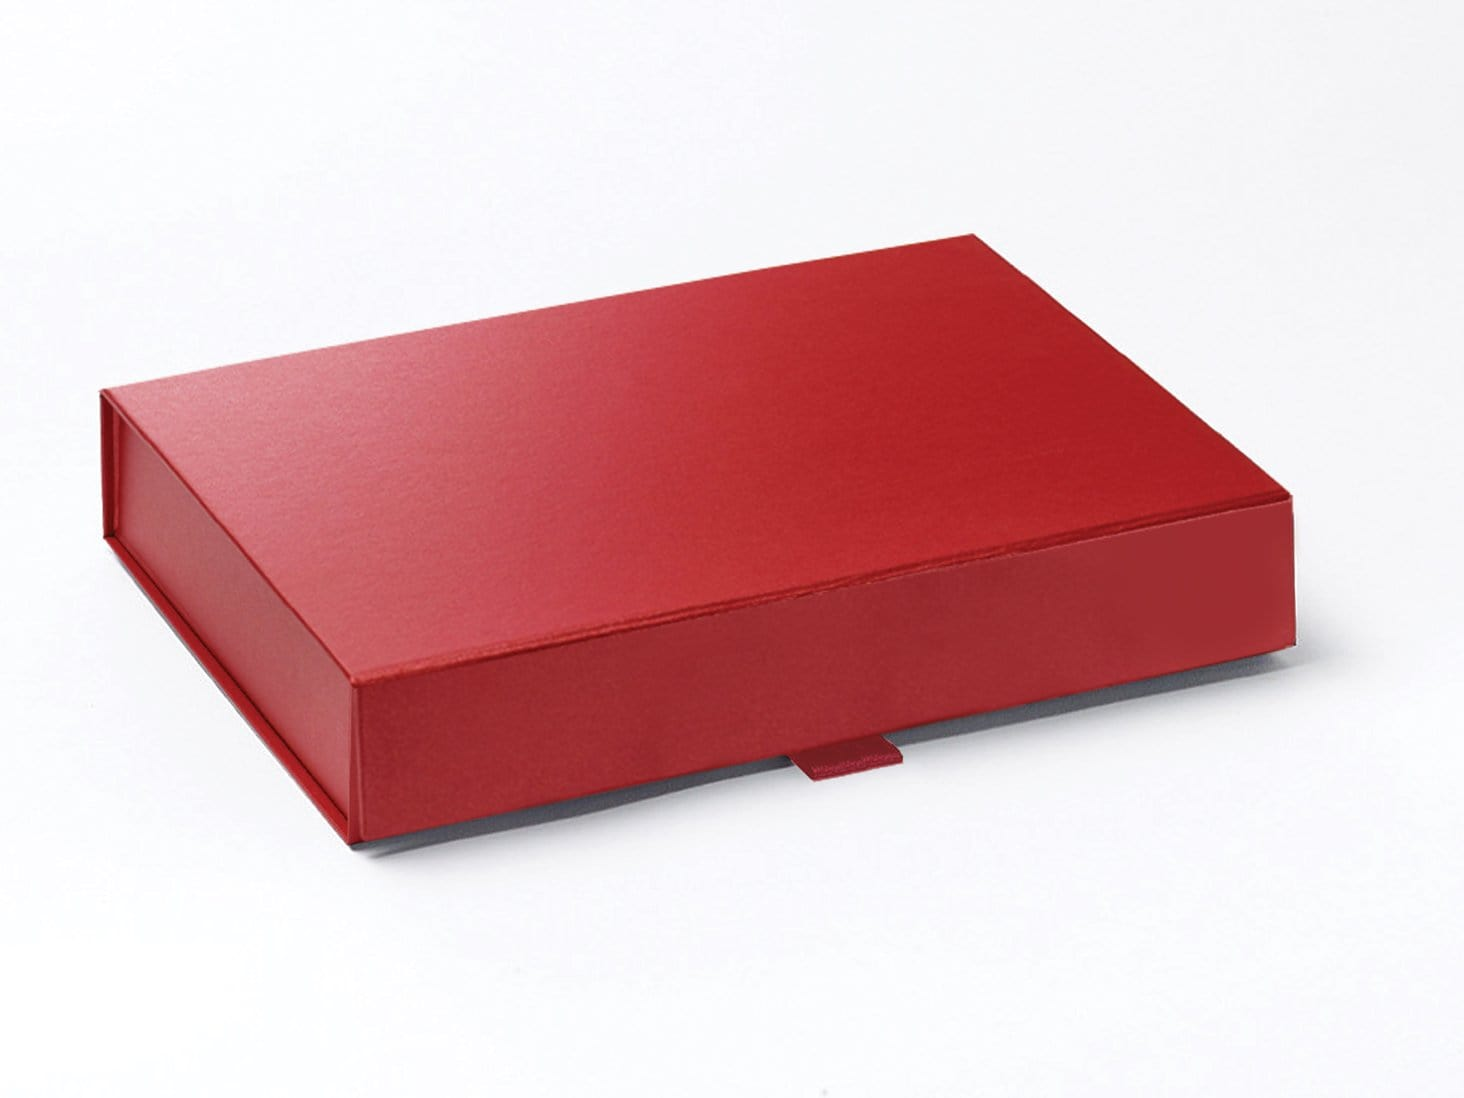 Red Folding Gift Box with Red Matt Pearl Finish and Magnetic Closure